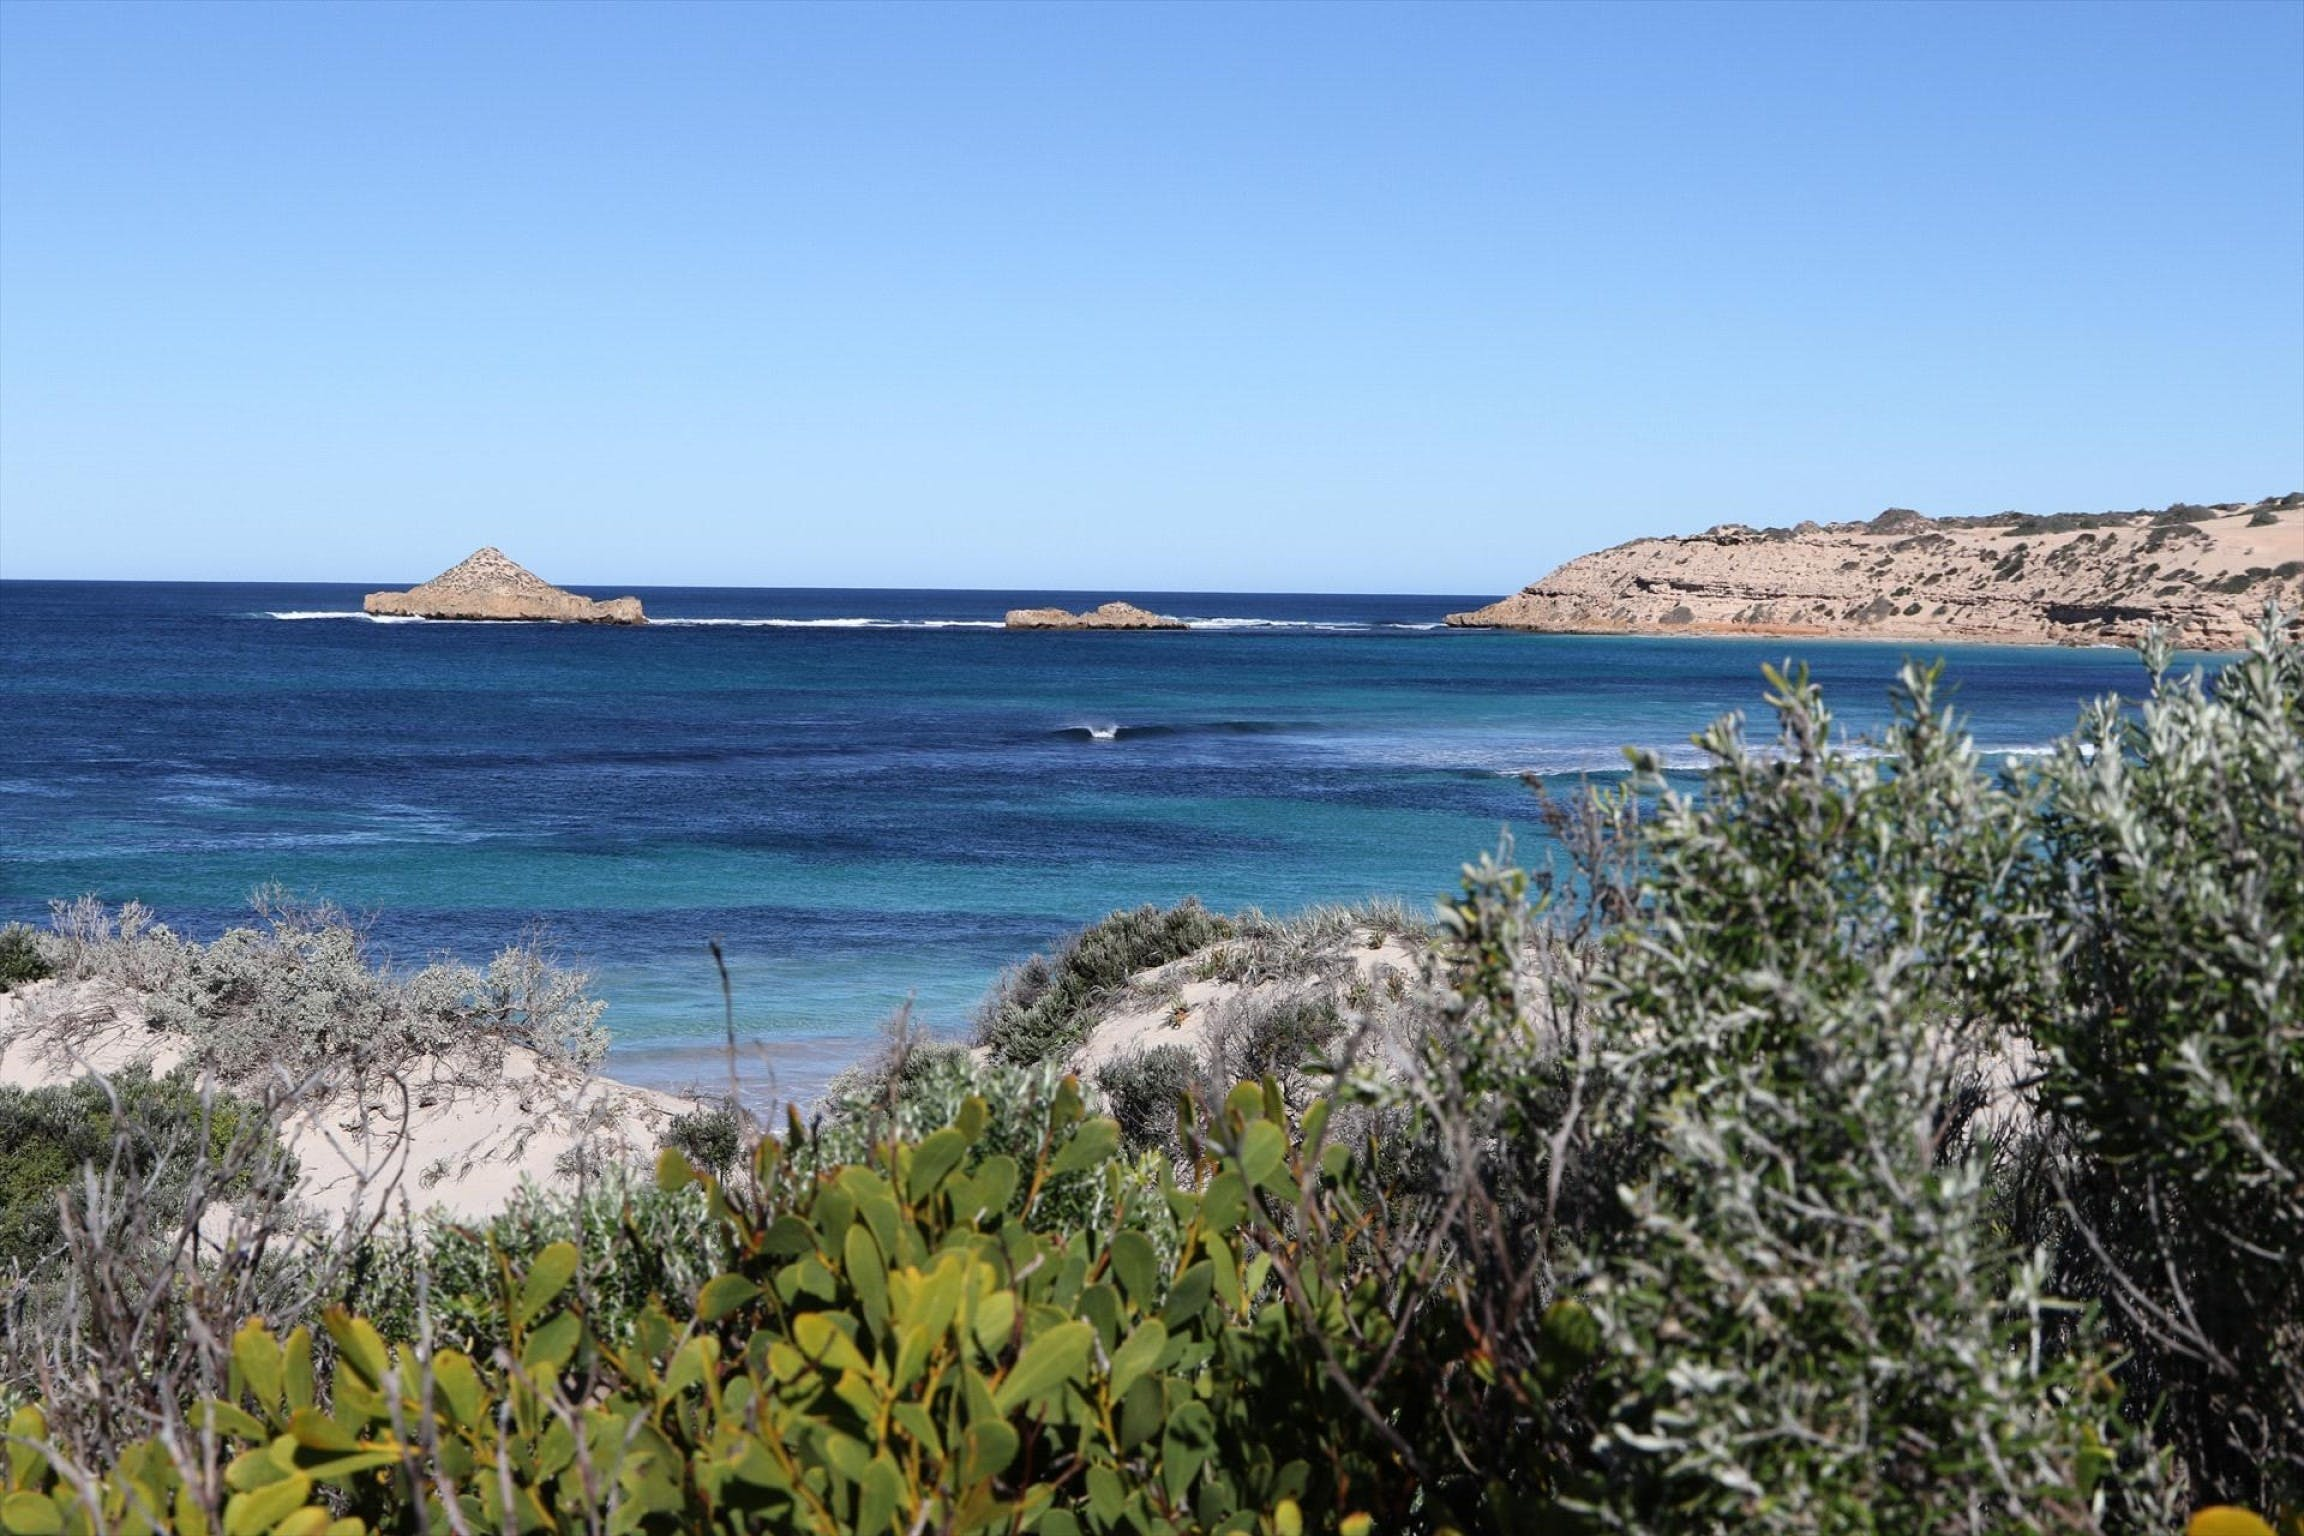 Fowlers Bay Conservation Park - Find Attractions